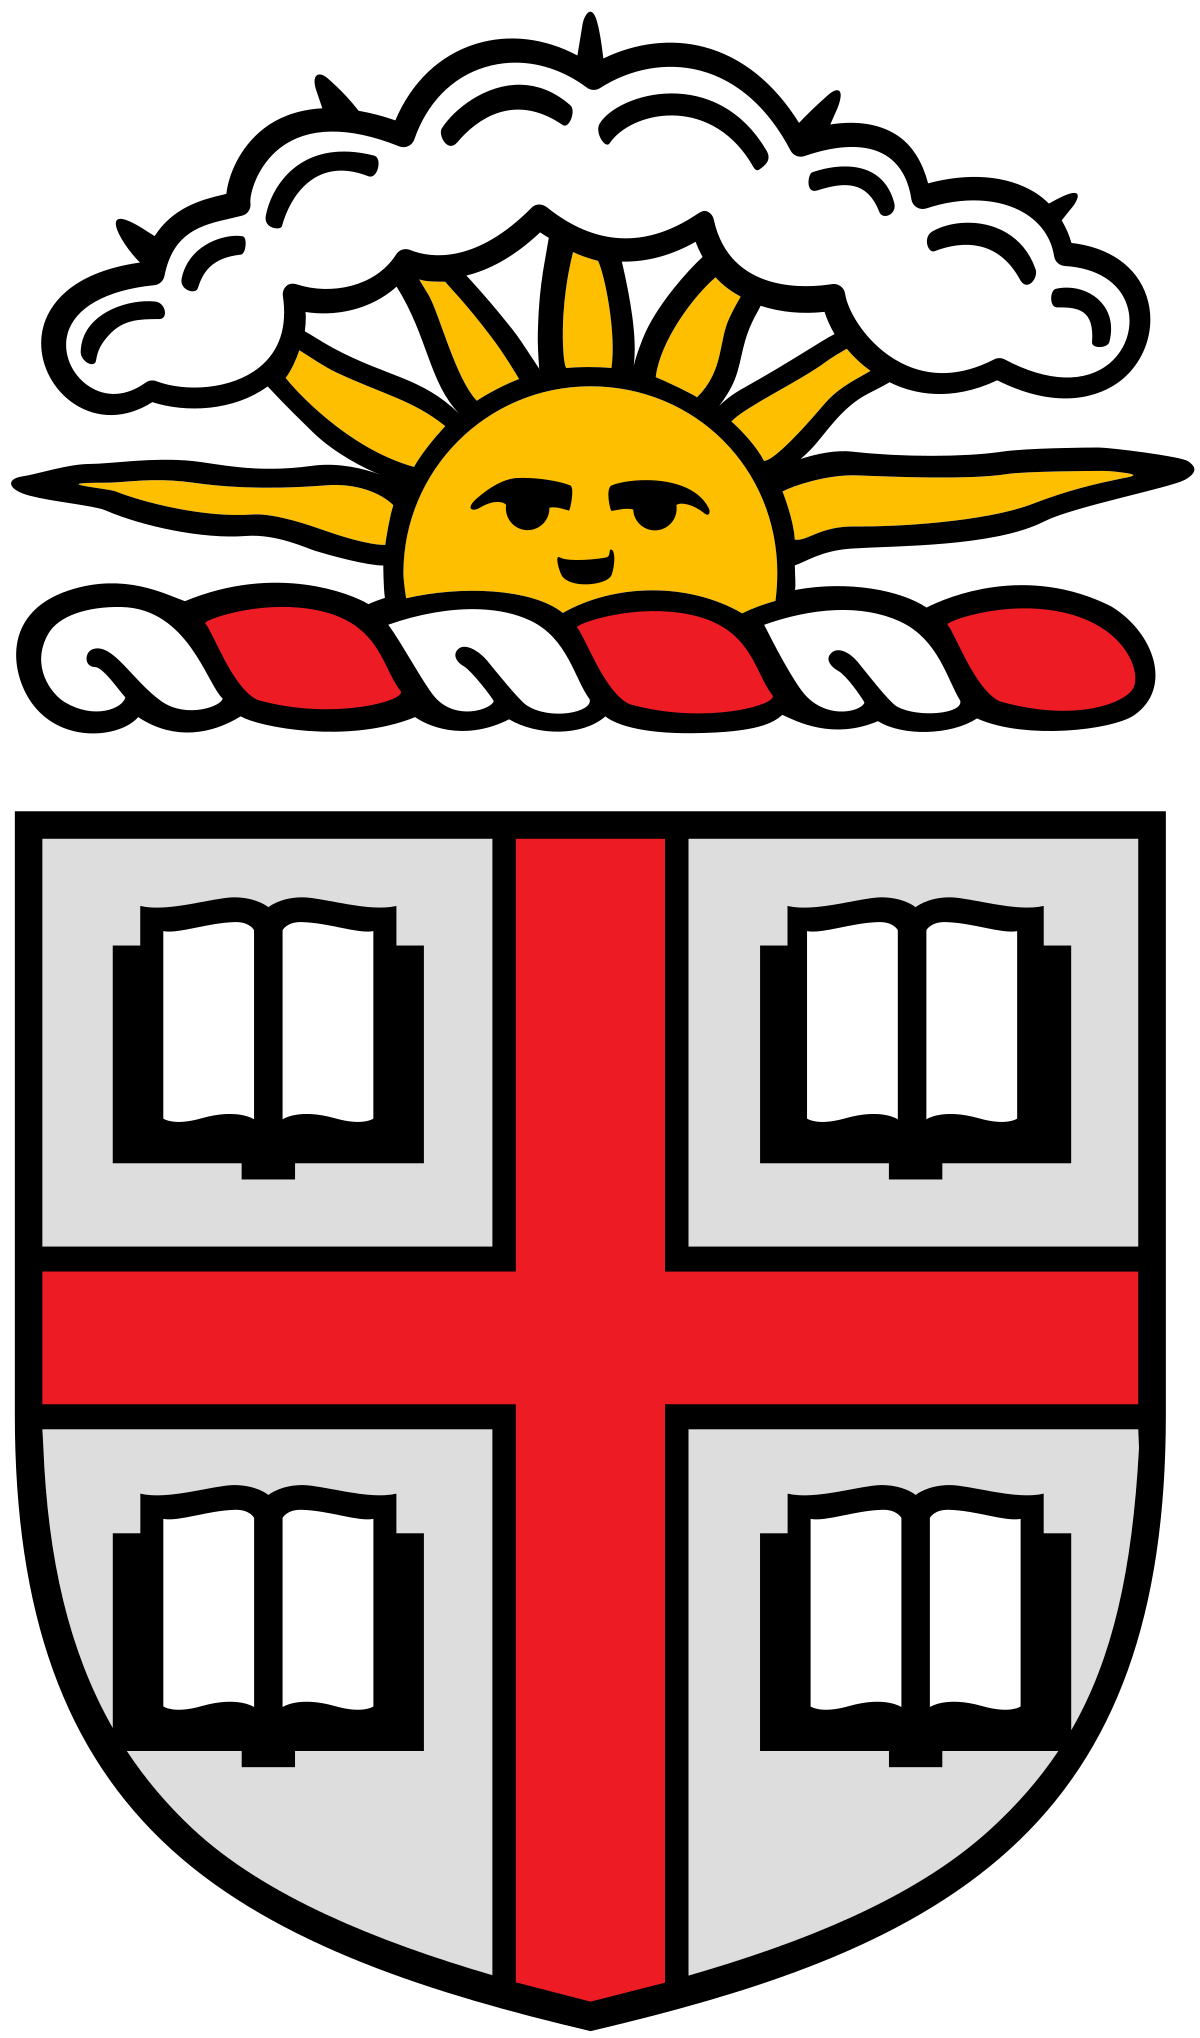 Husky svg george brown. University wikipedia